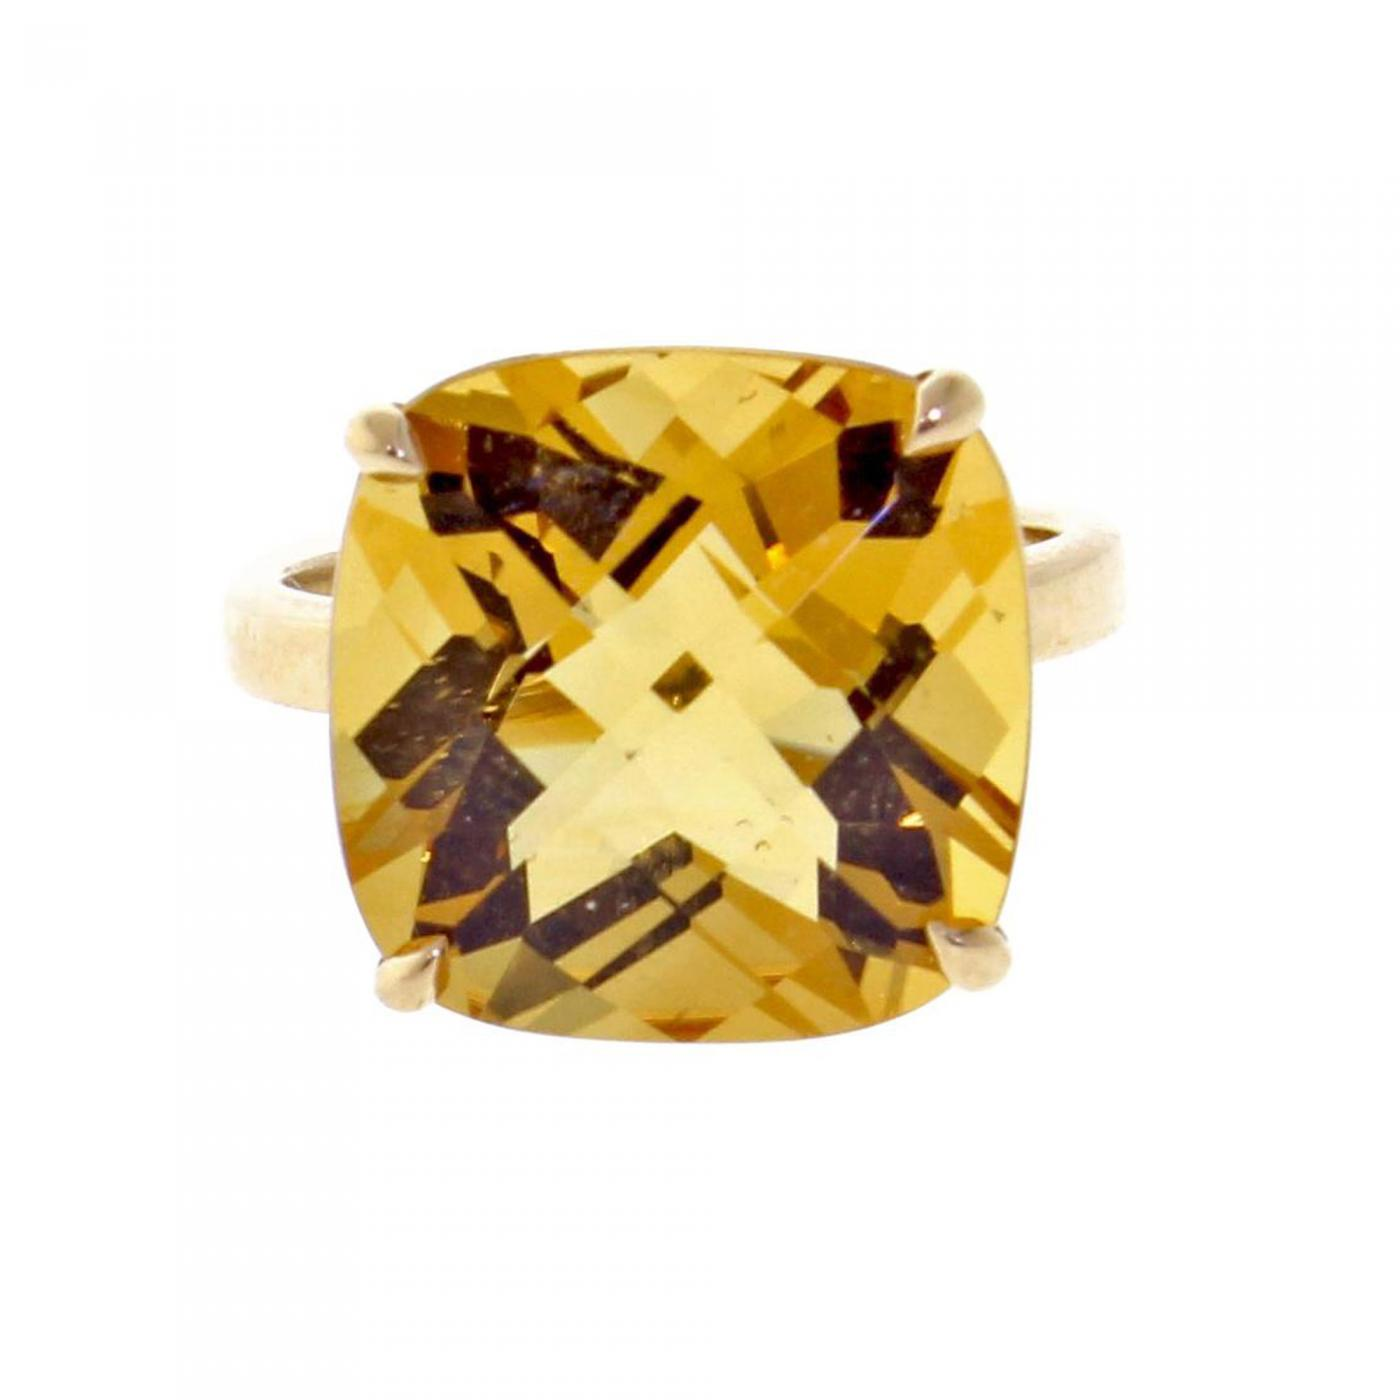 64ab41d07 Tiffany and Co. - Tiffany & Co. Sparklers Citrine Ring